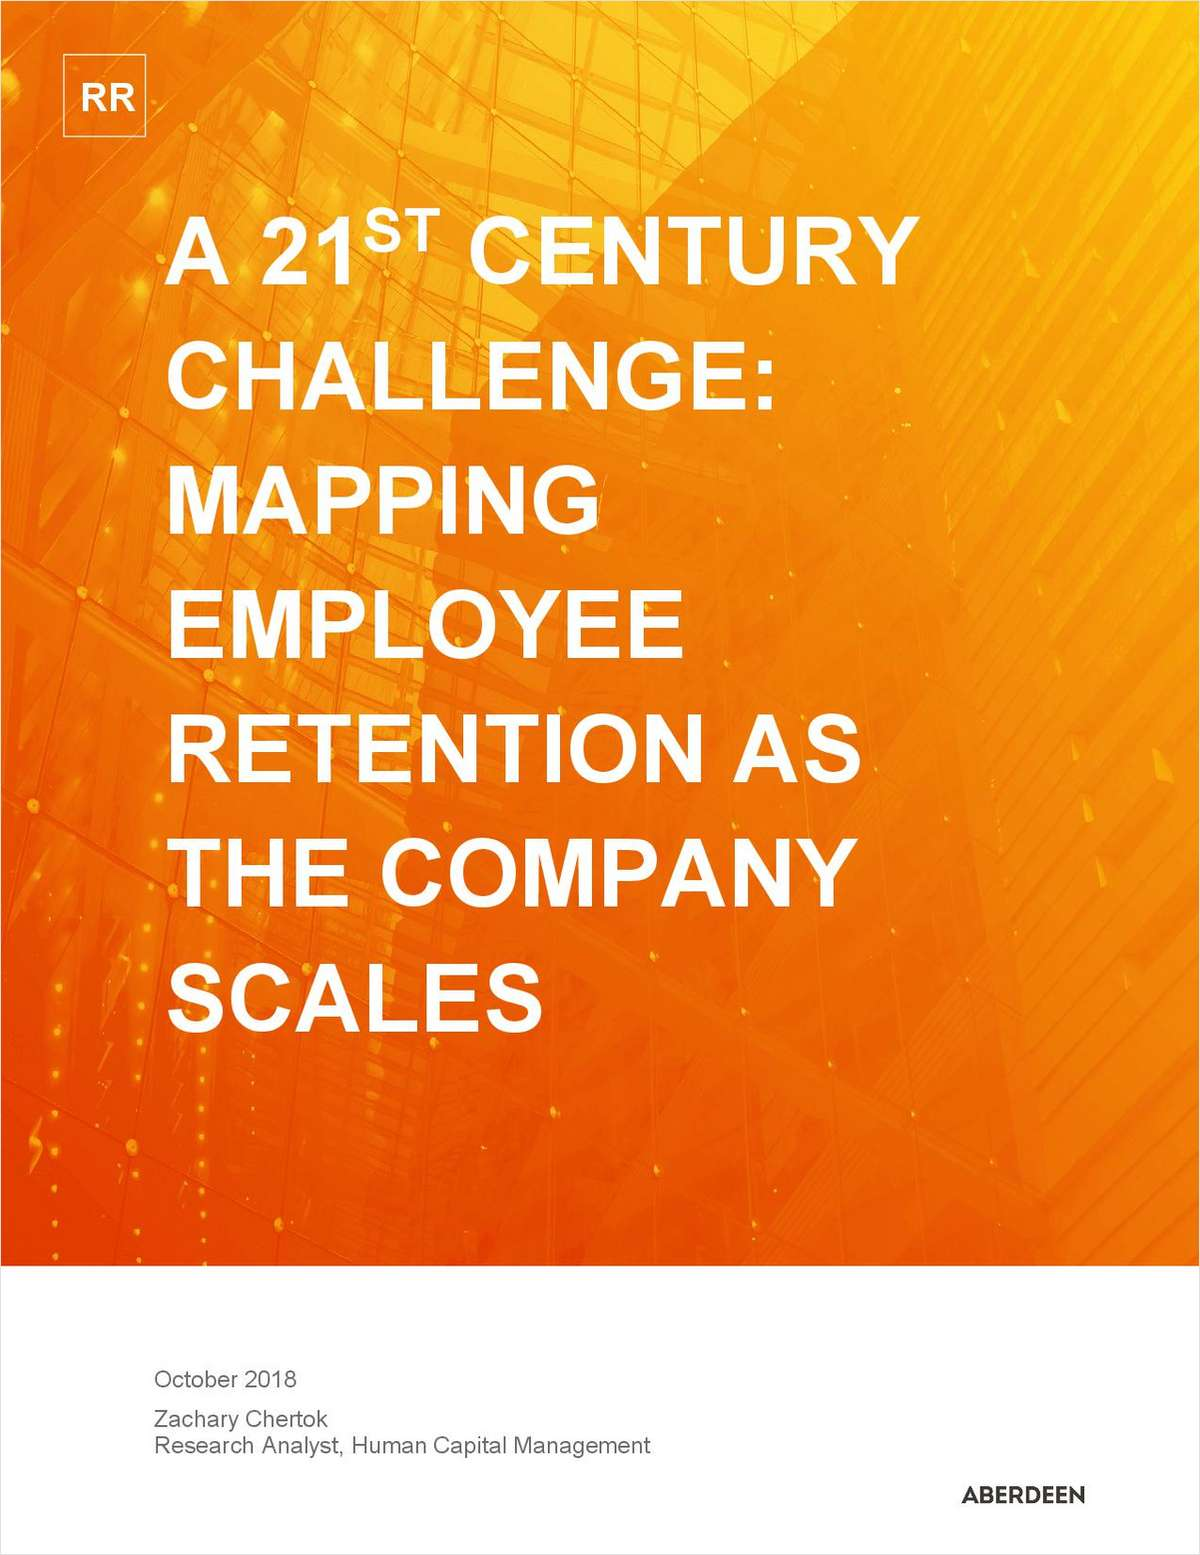 A 21st Century Challenge - Mapping Employee Retention as the Company Scales